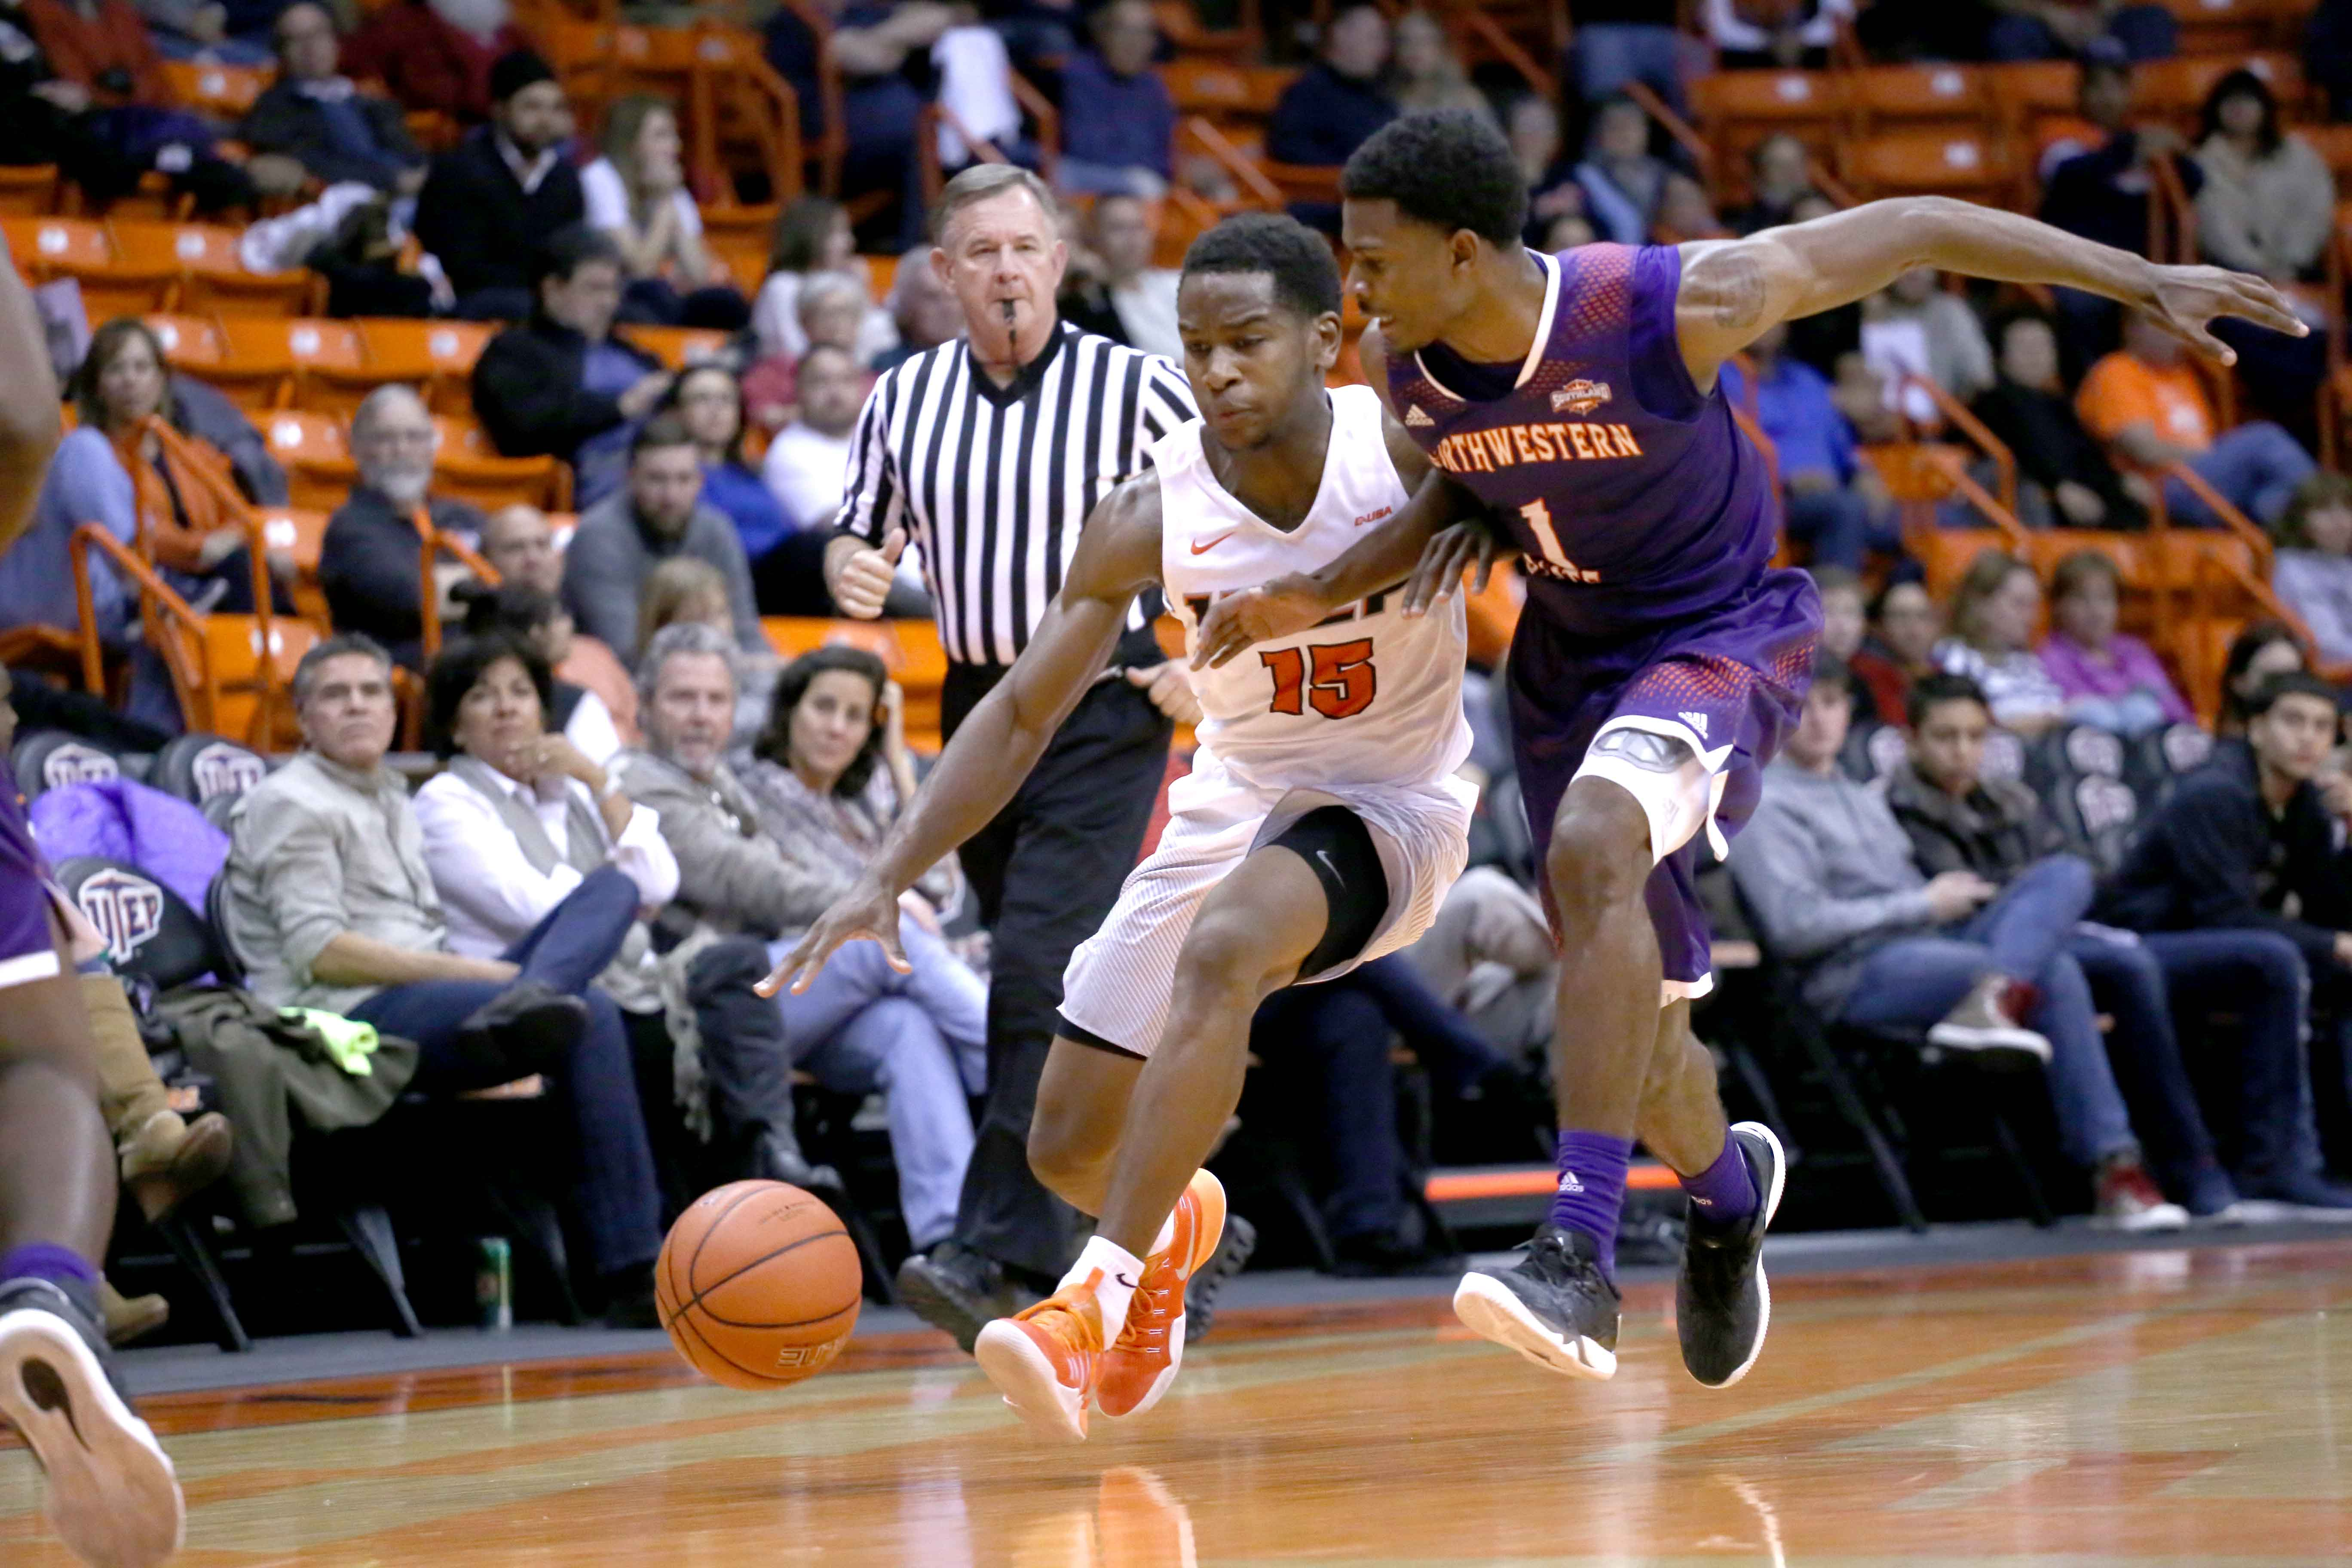 After a very rough start, the UTEP men's basketball team can still secure a first round bye in the C-USA tournament in Birmingham.